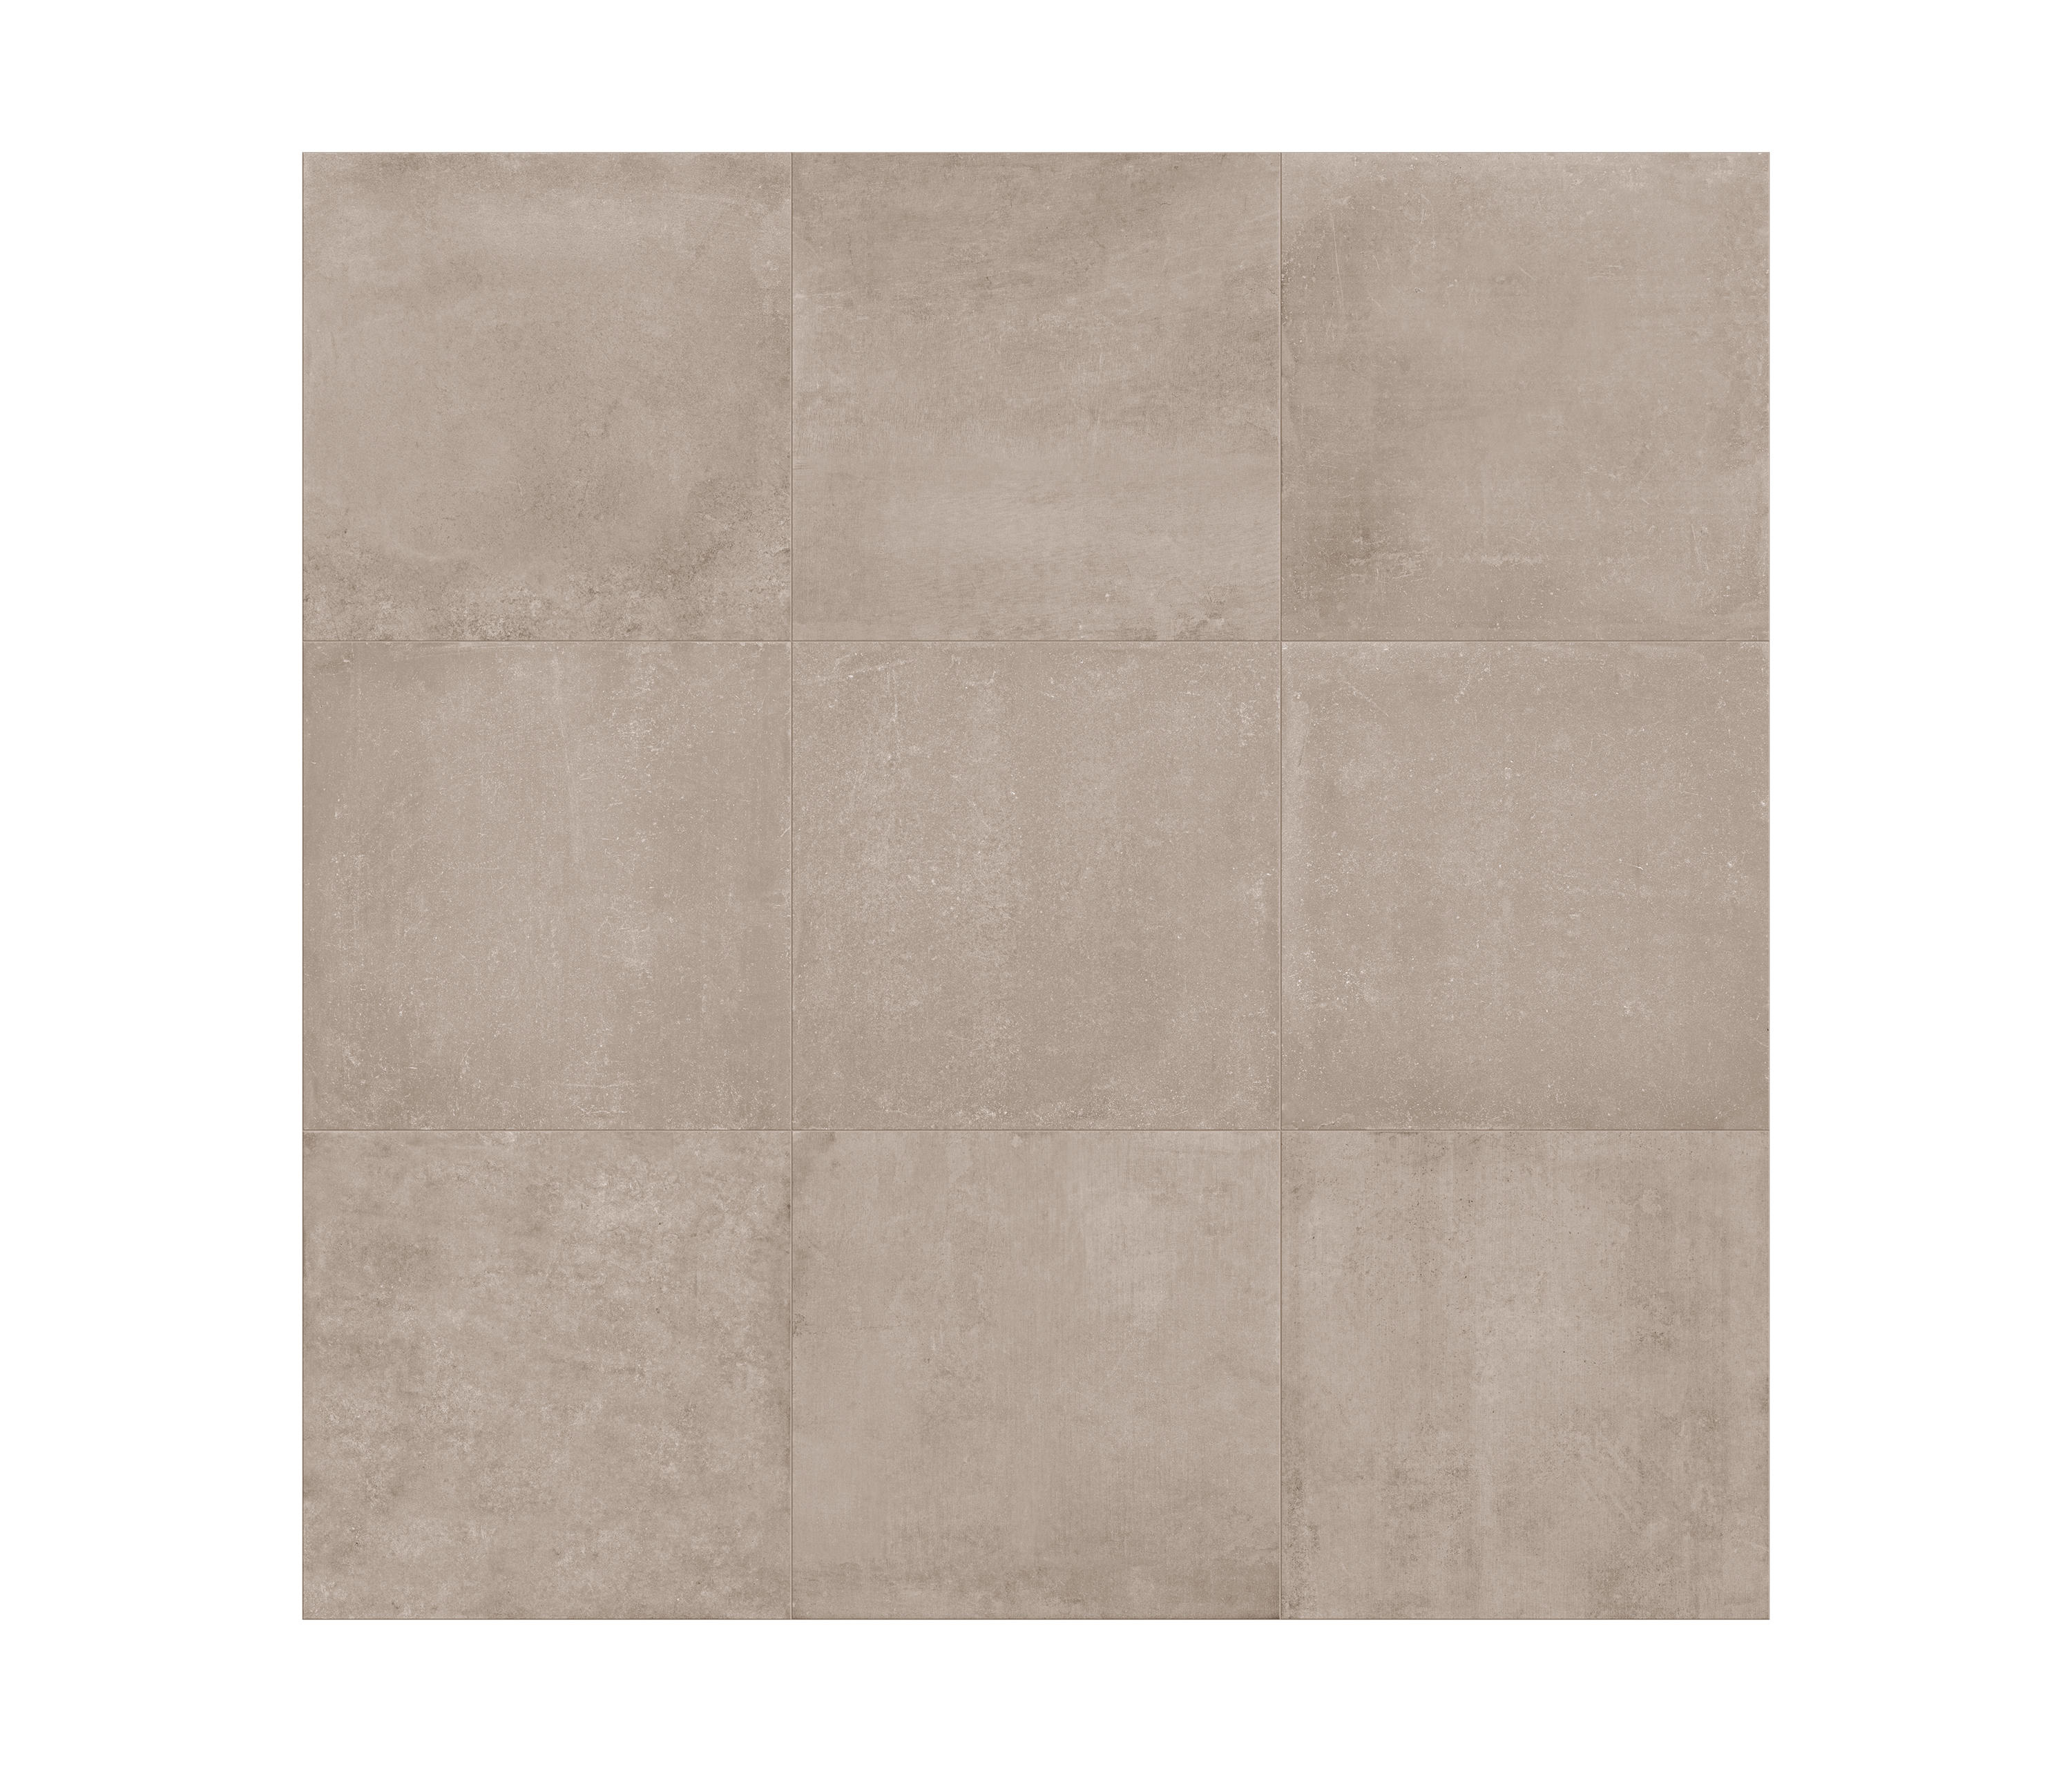 BETONSTIL CONCRETE LIGHT - Floor tiles from Terratinta ...